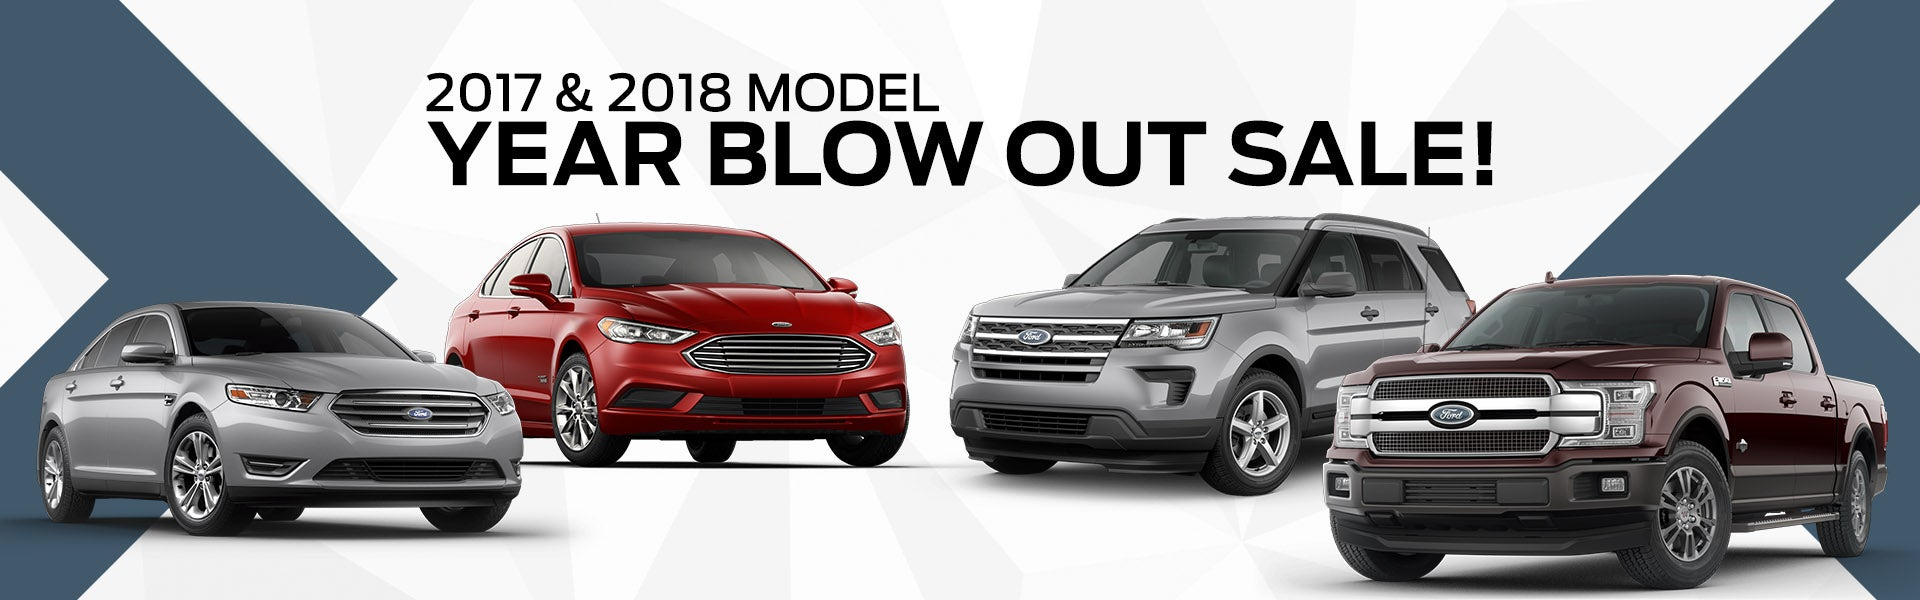 Model Year Blow Out